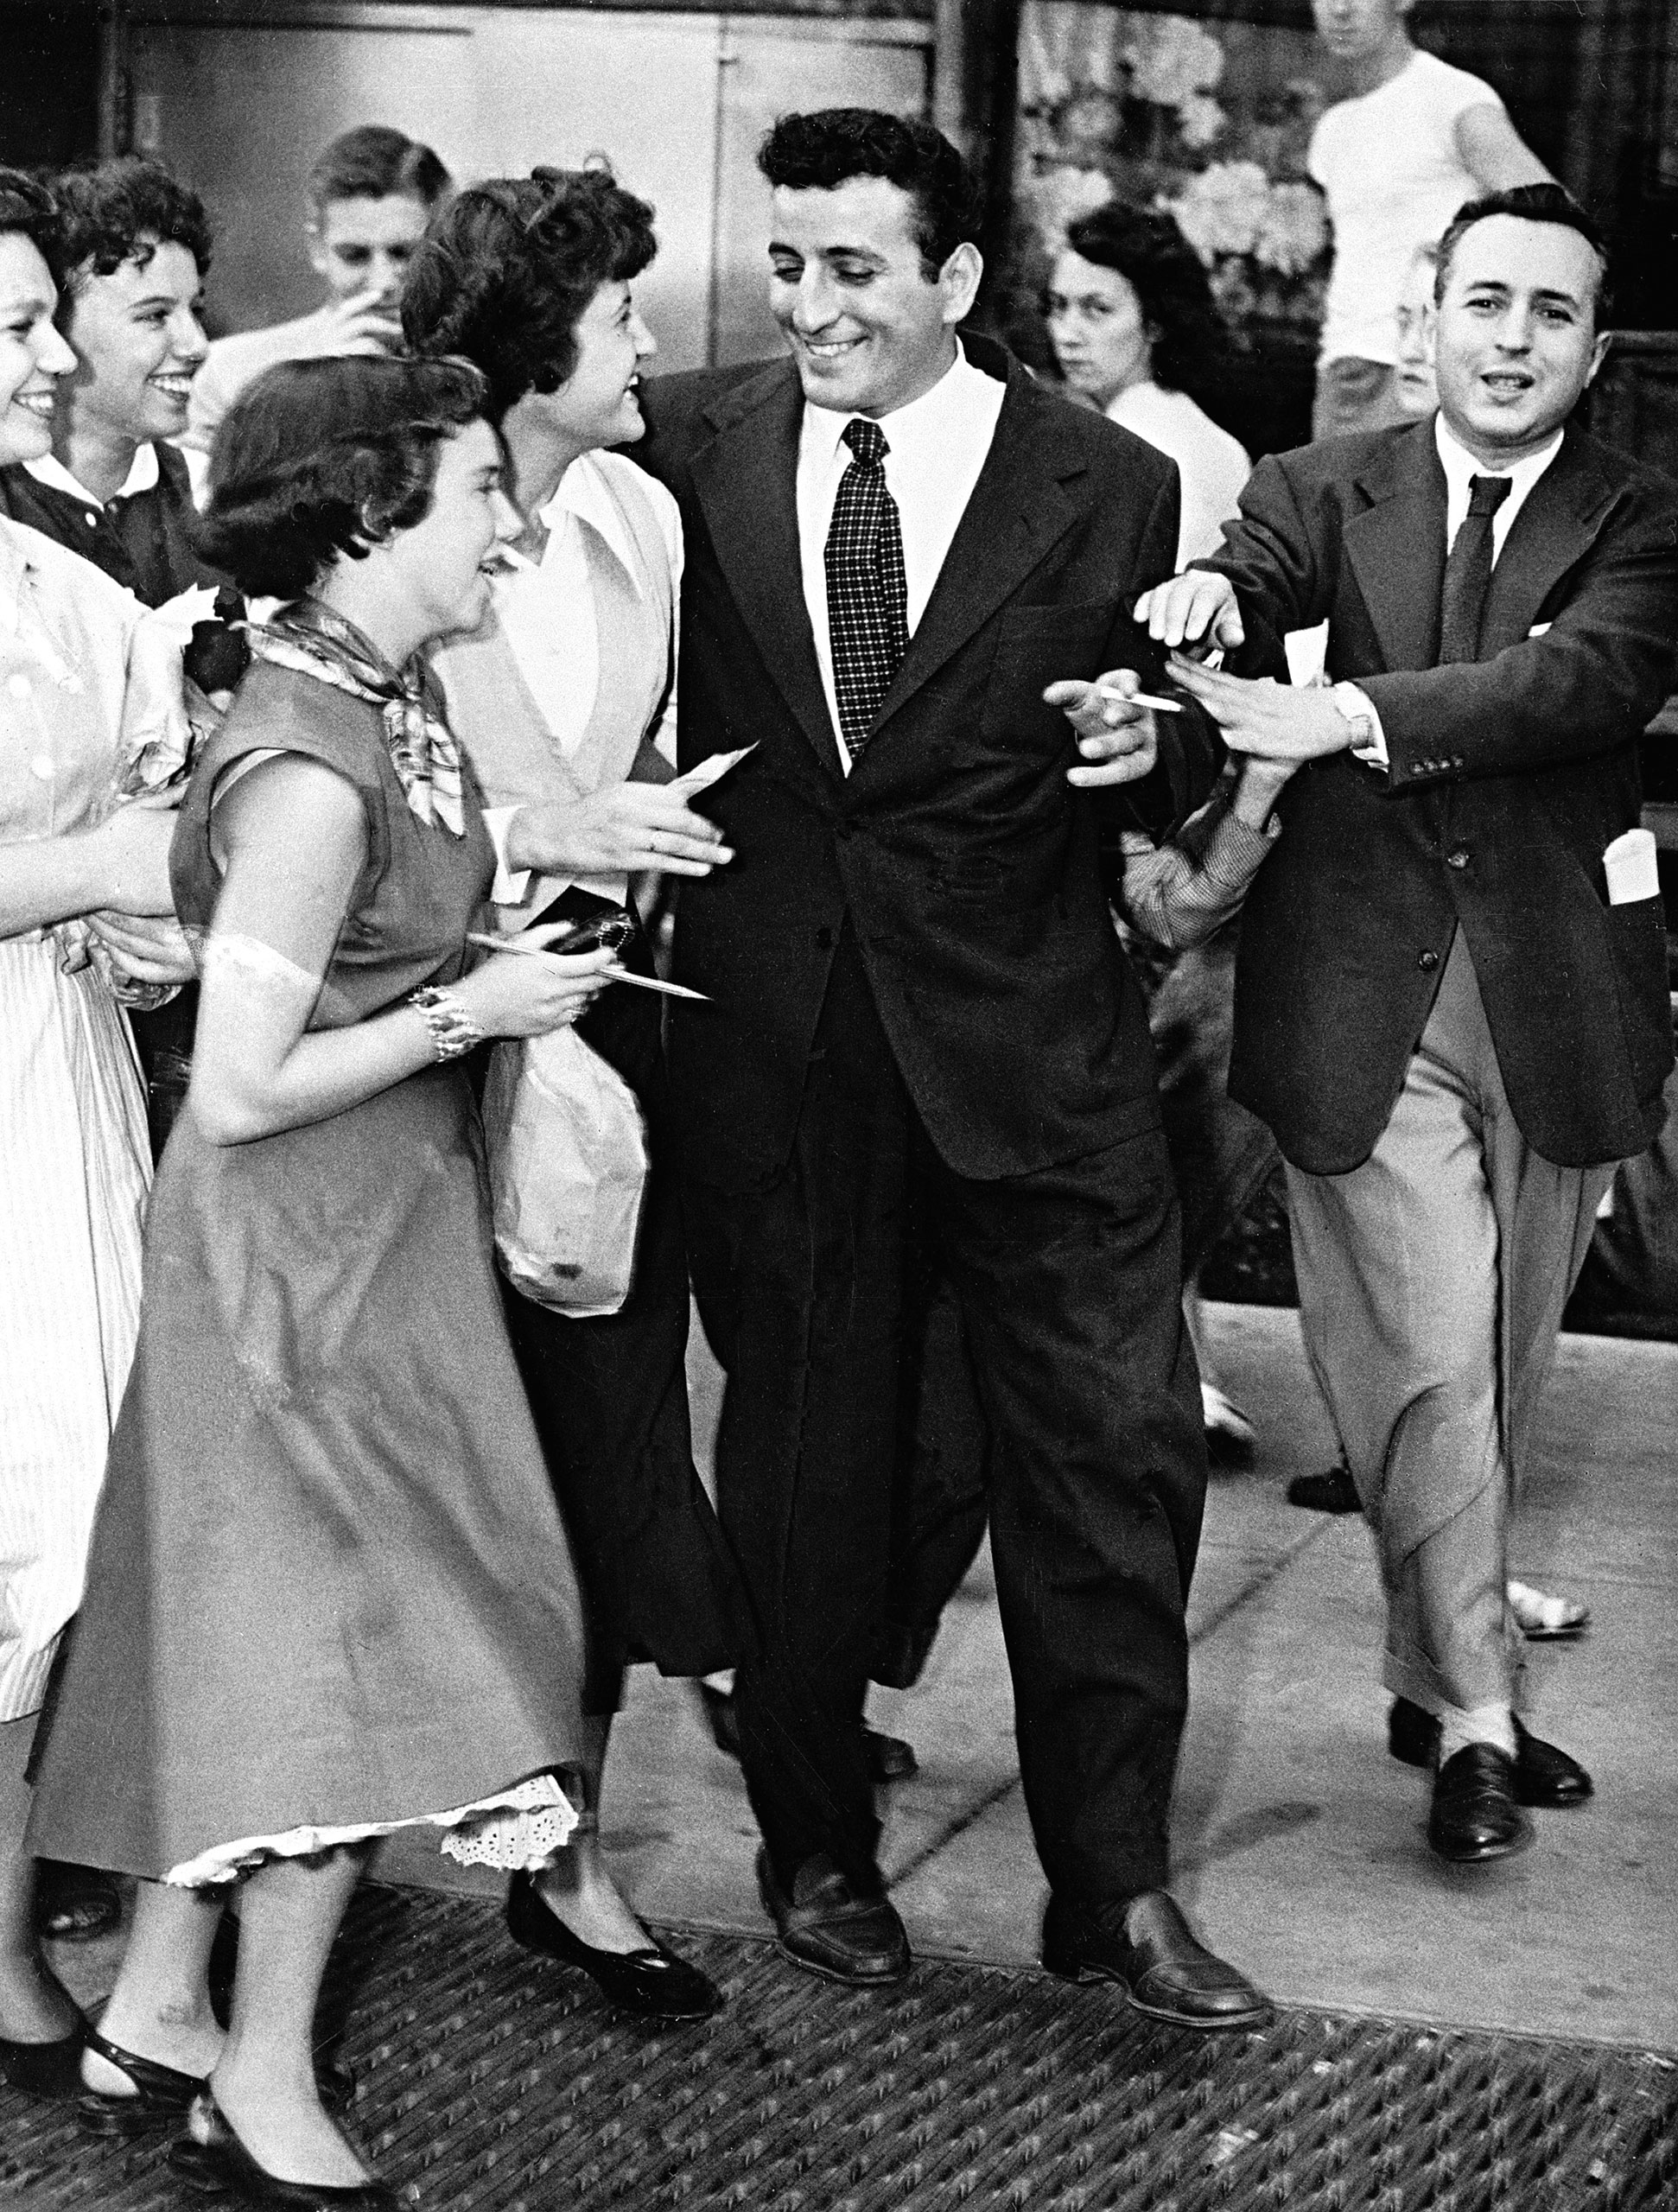 Tony Bennett approached by autograph seekers as he leaves a performance on Oct. 4, 1951.